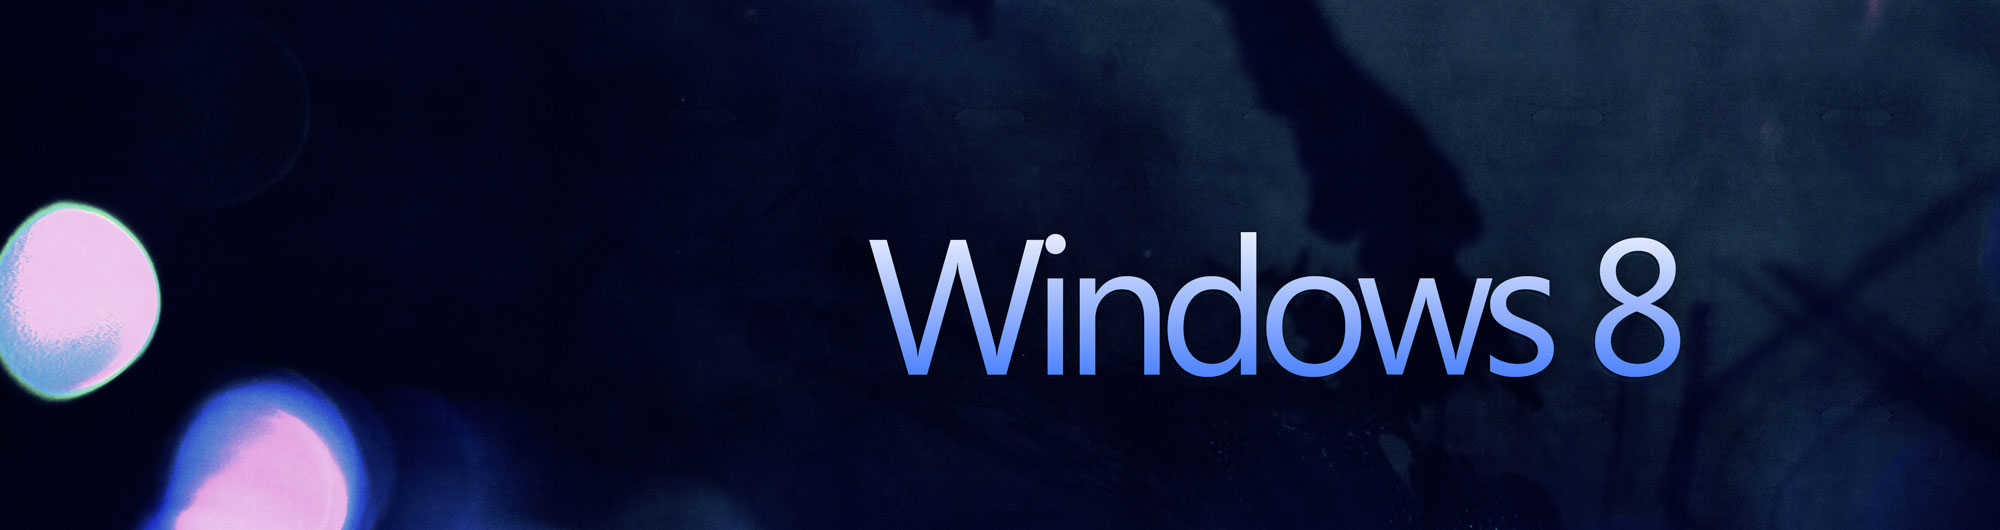 Windows 8 Upgrade and Review